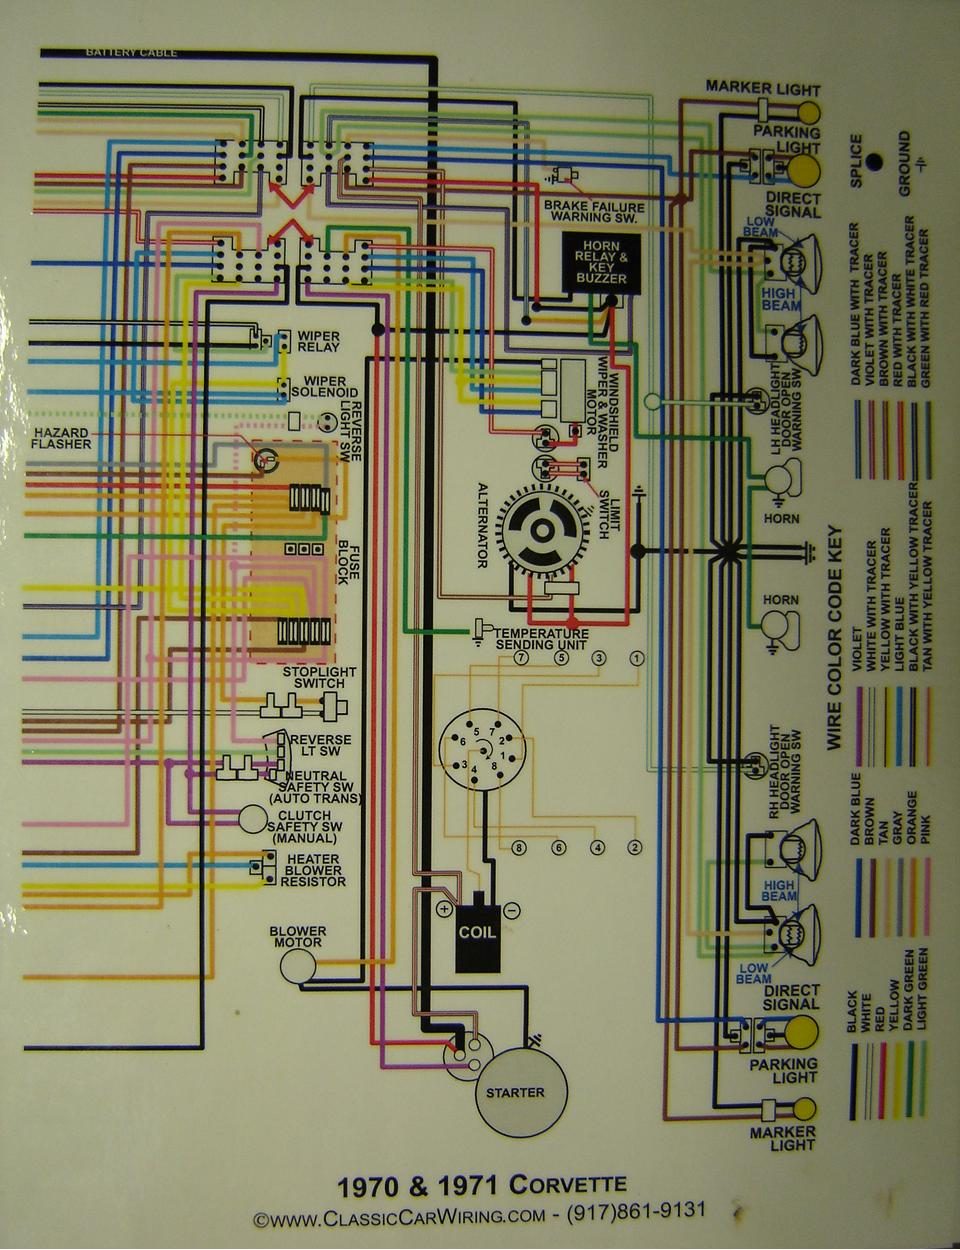 medium resolution of 71 nova wiring diagram wiring diagram ebook 71 nova wiring harness